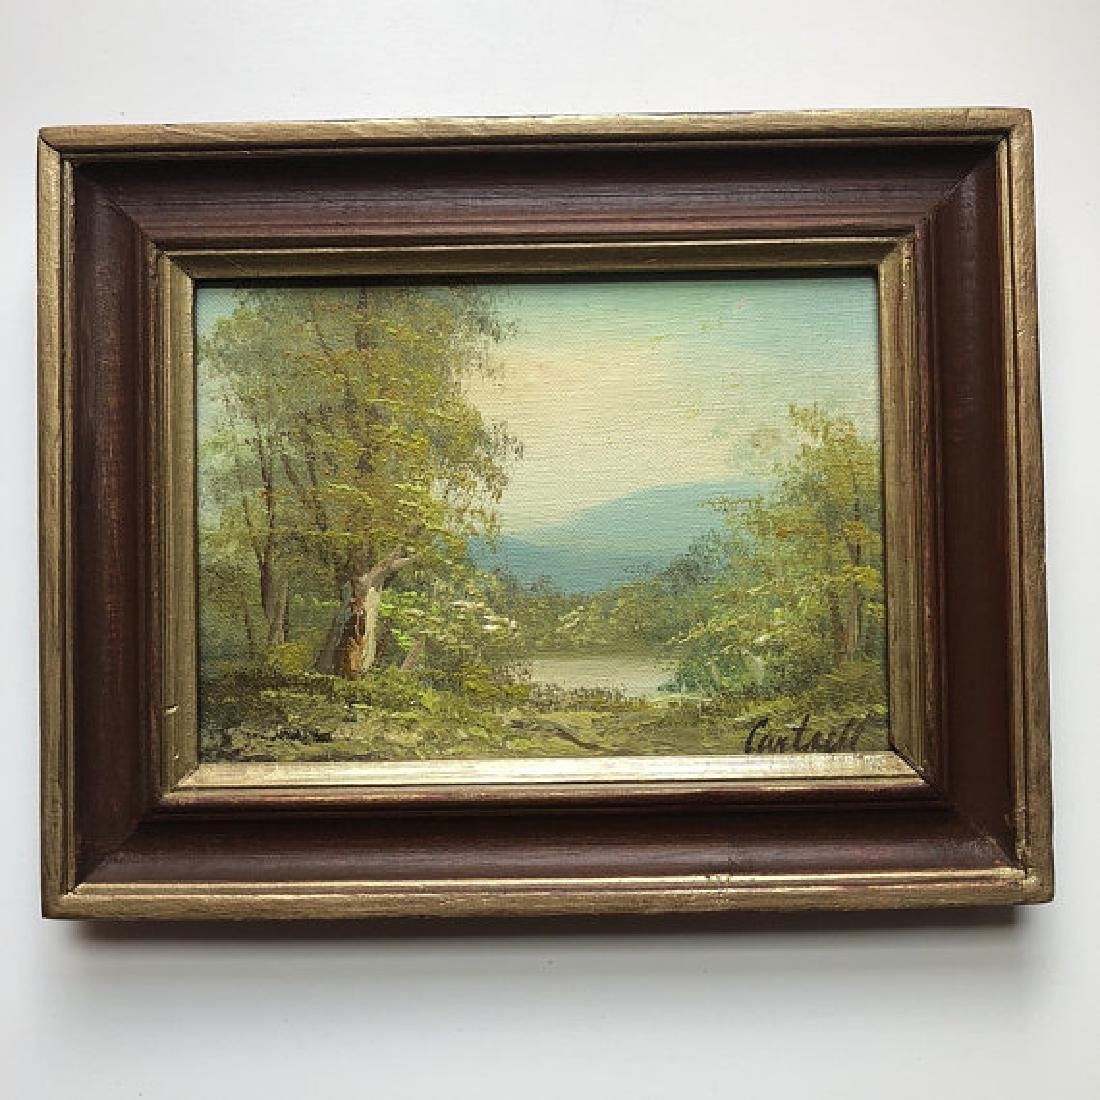 Small Vintage Landscape Painting, Signed Cantrell |